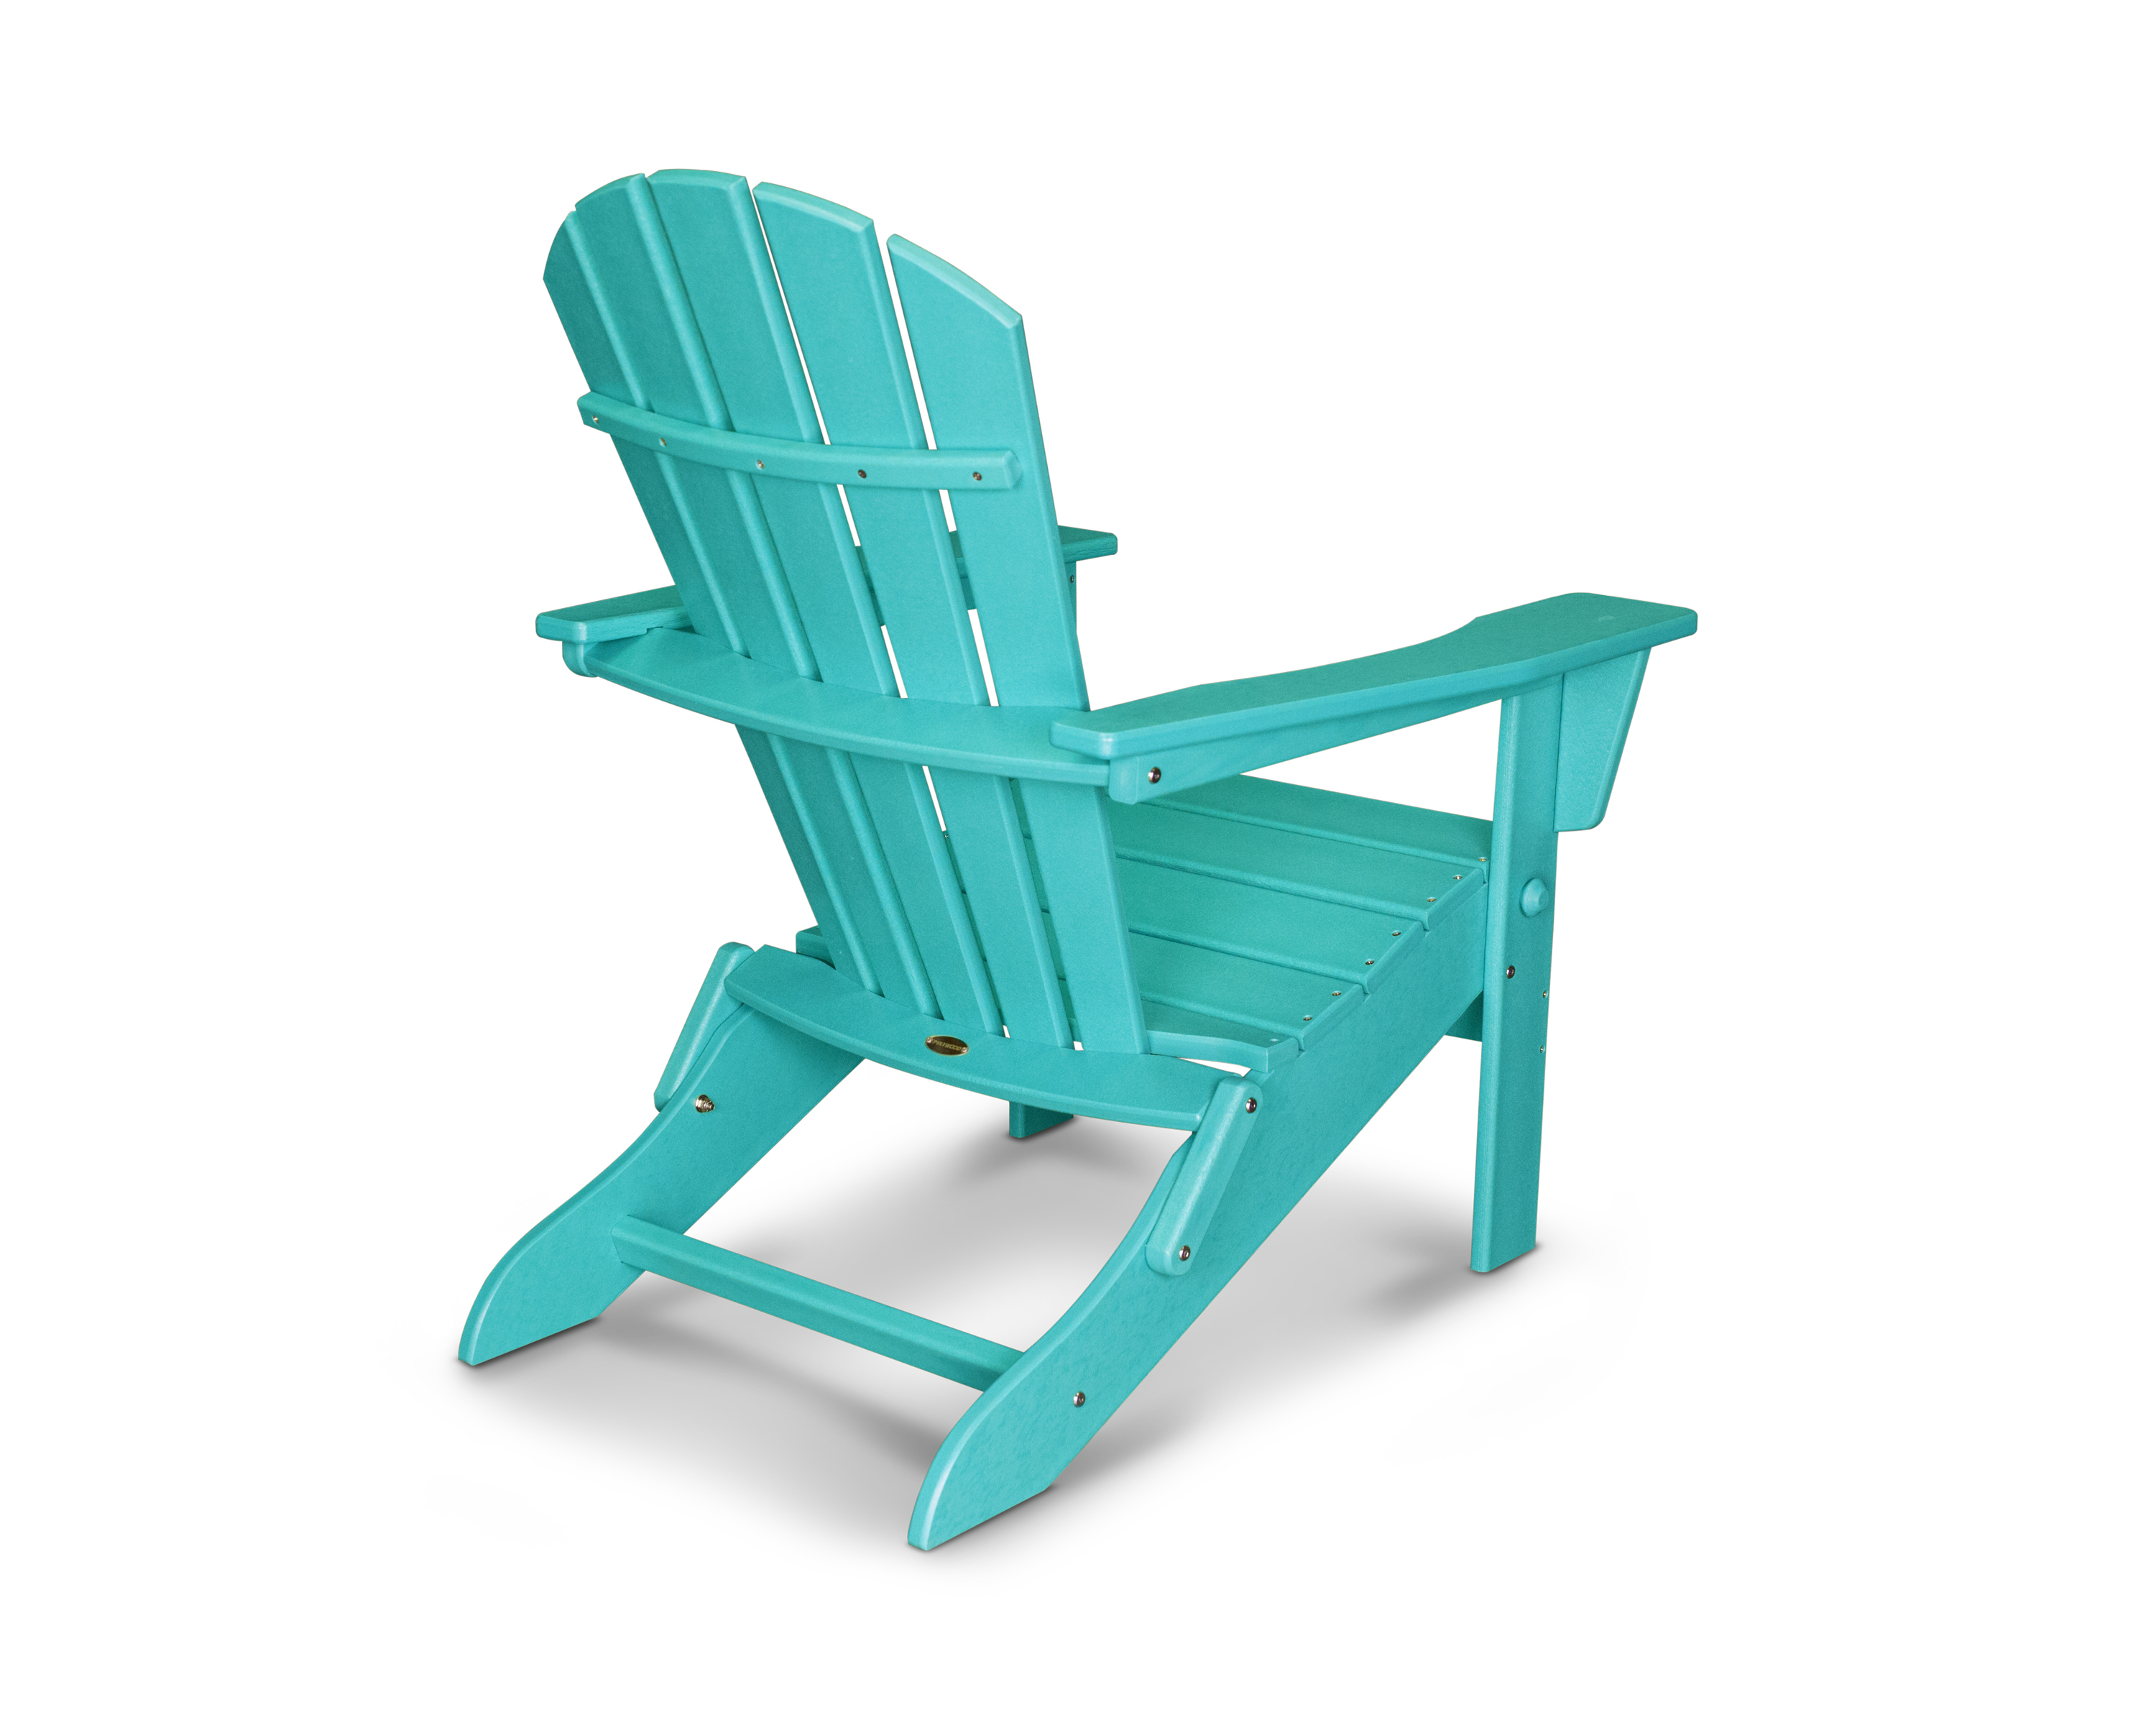 Capable Of Traveling With You Or Staying Right At Home In Your Outdoor Area, The Palm Coast Folding Adirondack Is The Perfect Chair To Save Space While Saving Time On Setup. Maximum Comfort And Functionality Combine To Form This Durable Adirondack. The Hi